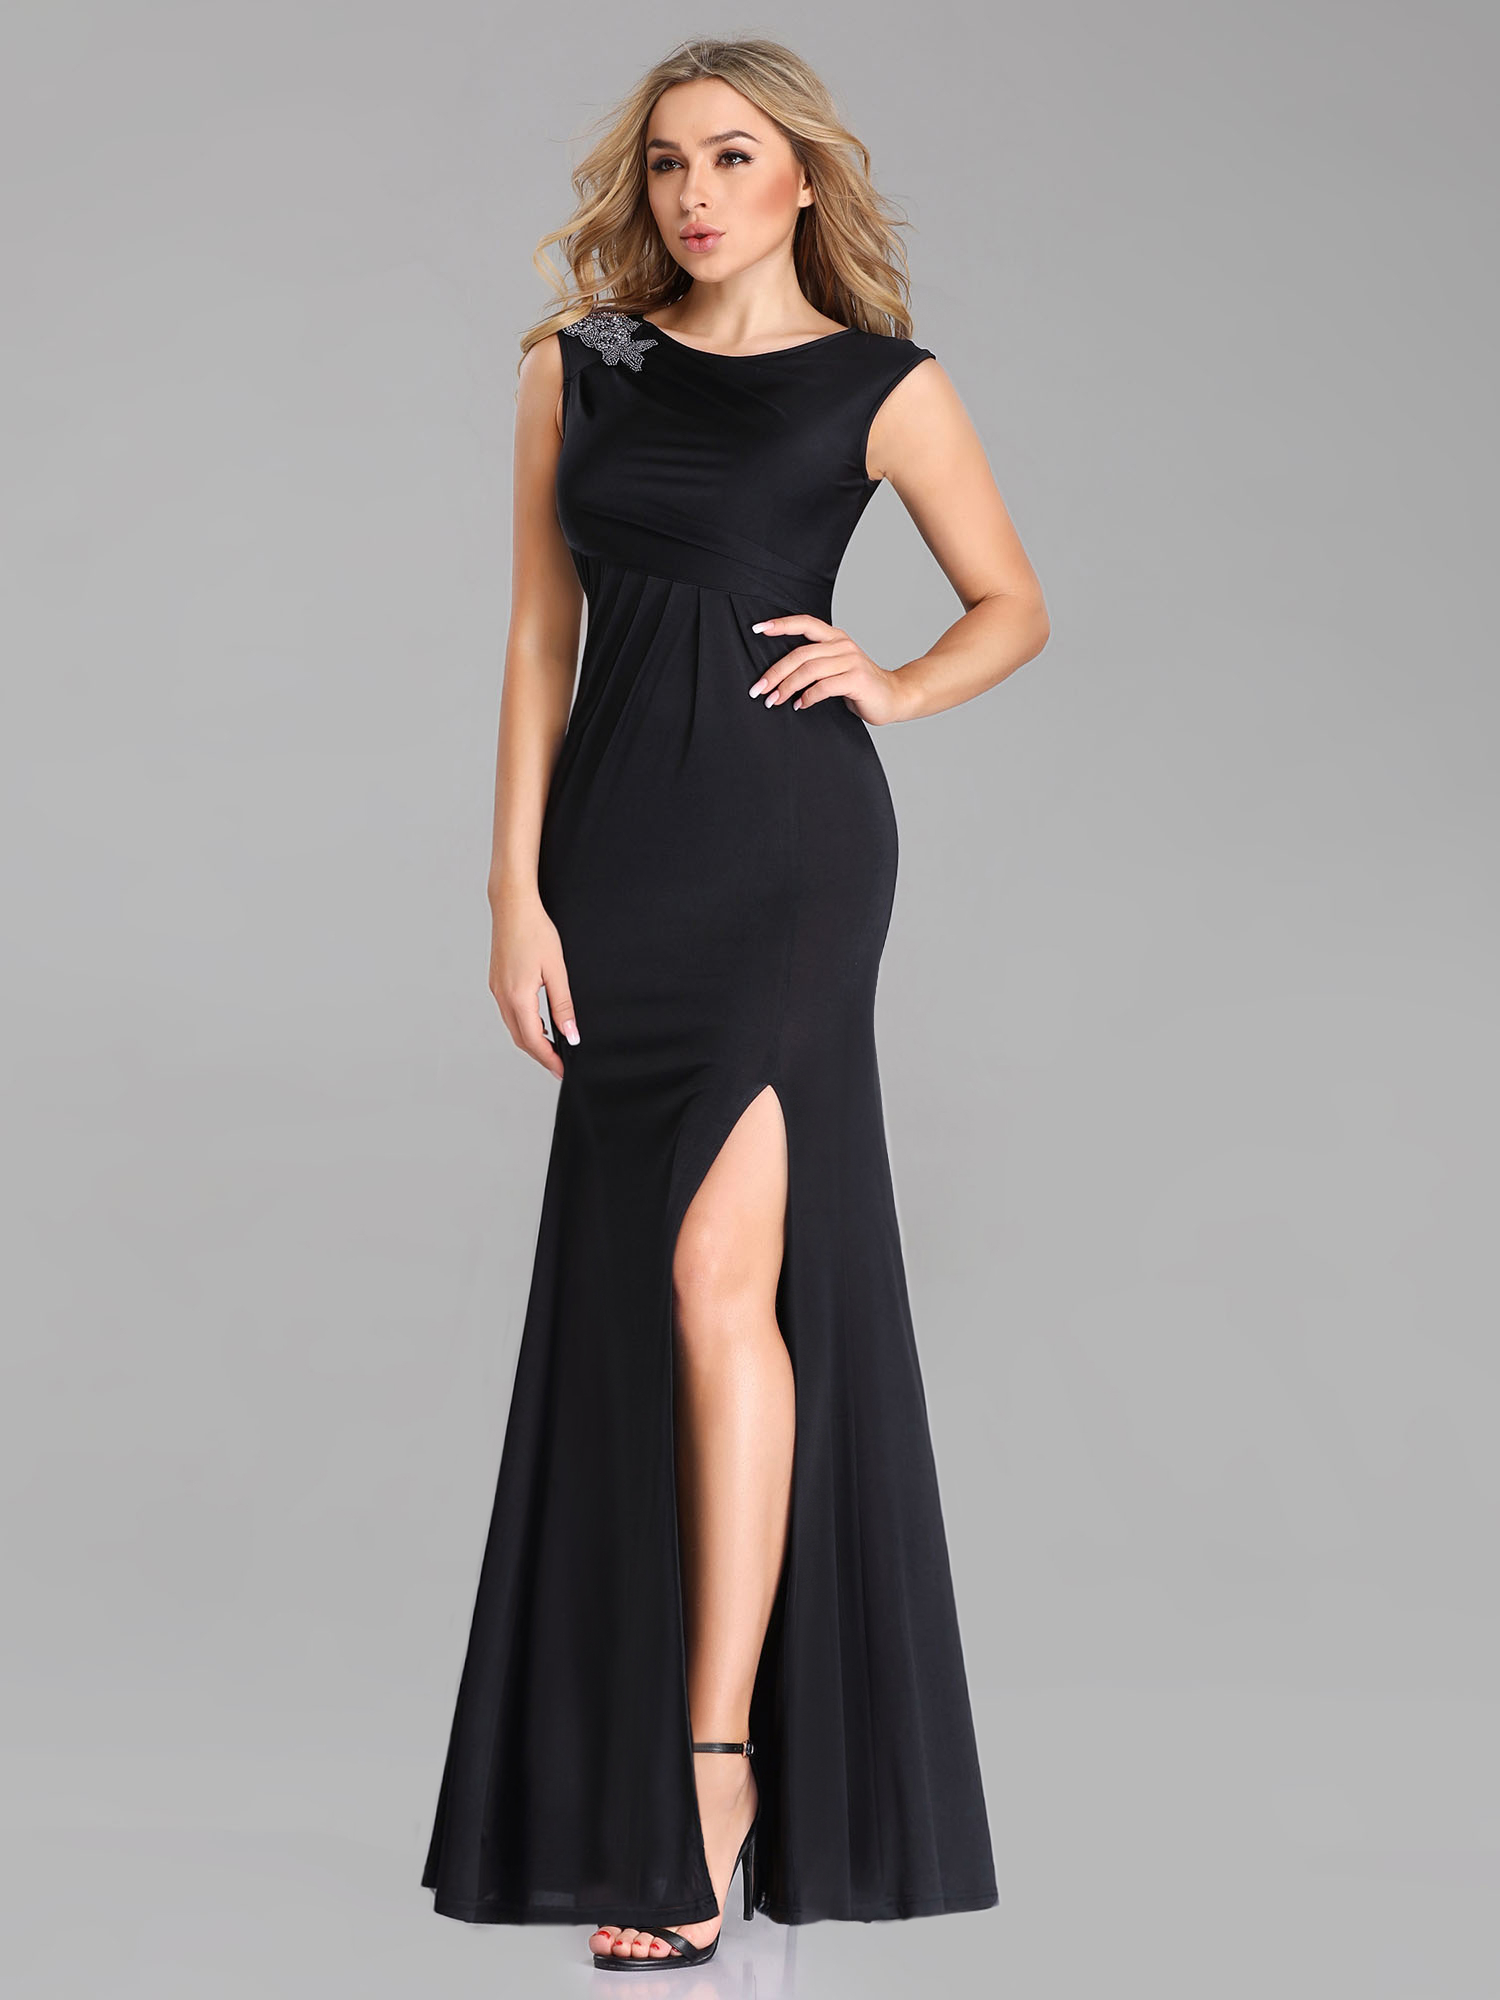 Party-Dress Evening-Dresses Sleeve Appliques Ever Pretty Mermaid Sexy Black Formal Long